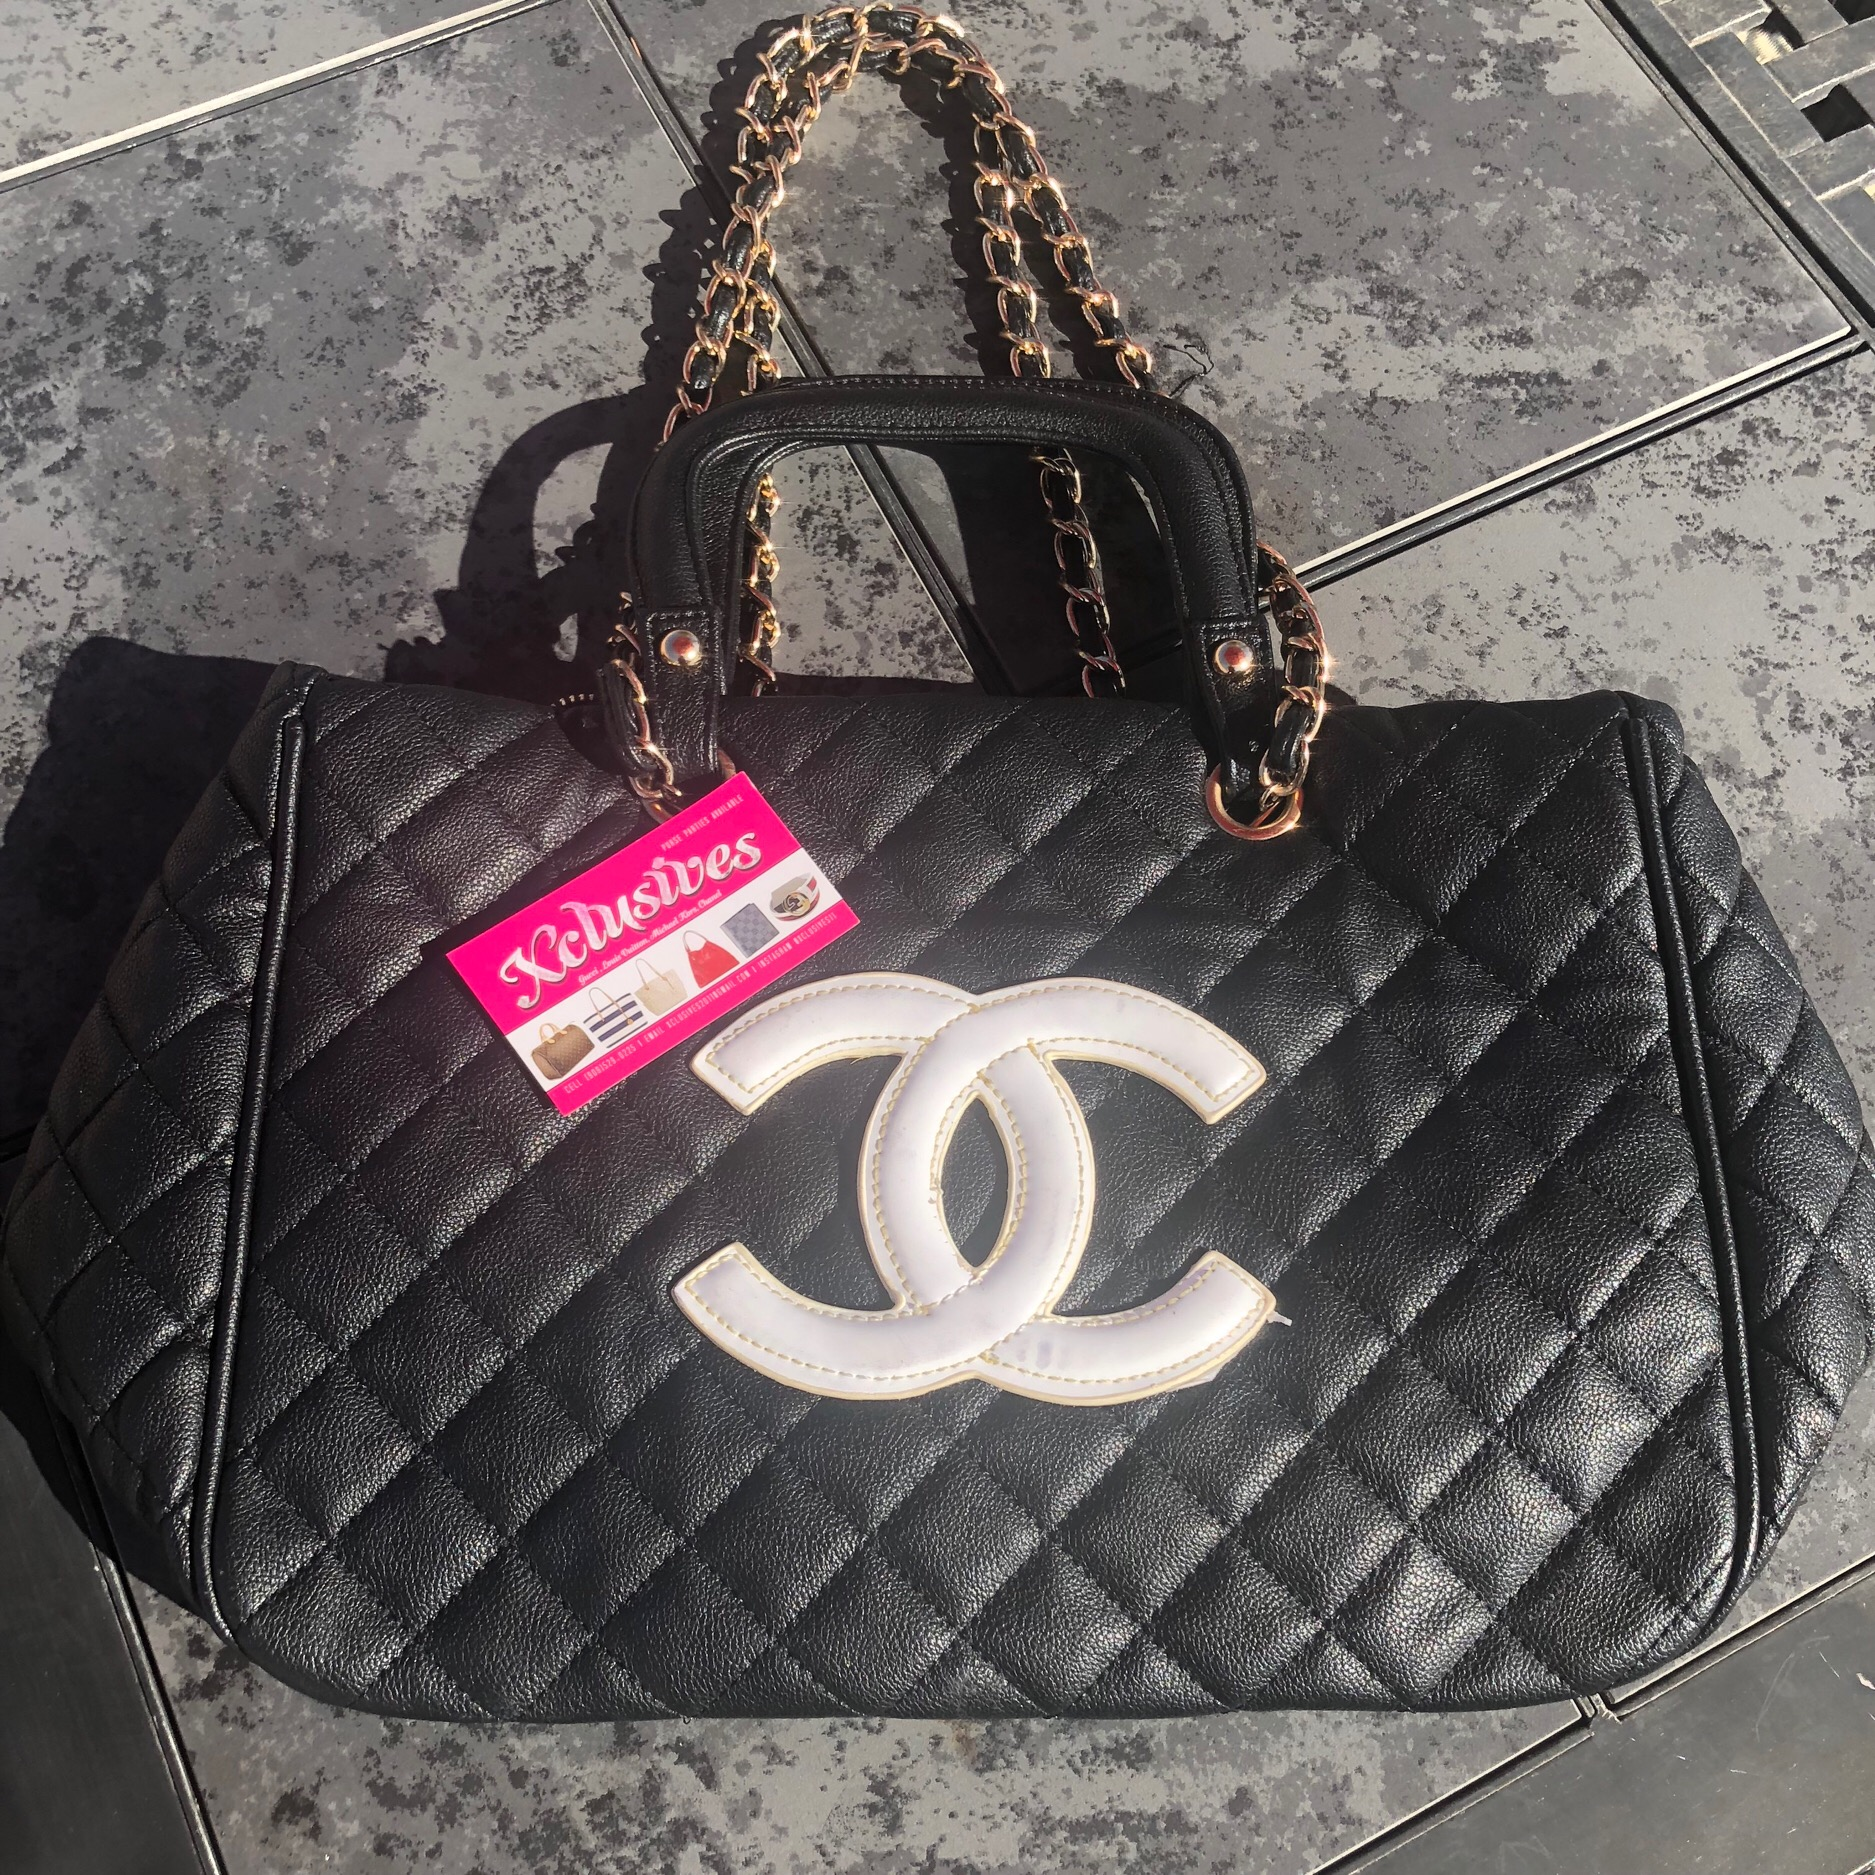 763b2cd2a7ac Chanel purse w/ gold chain · Xclusives · Online Store Powered by ...